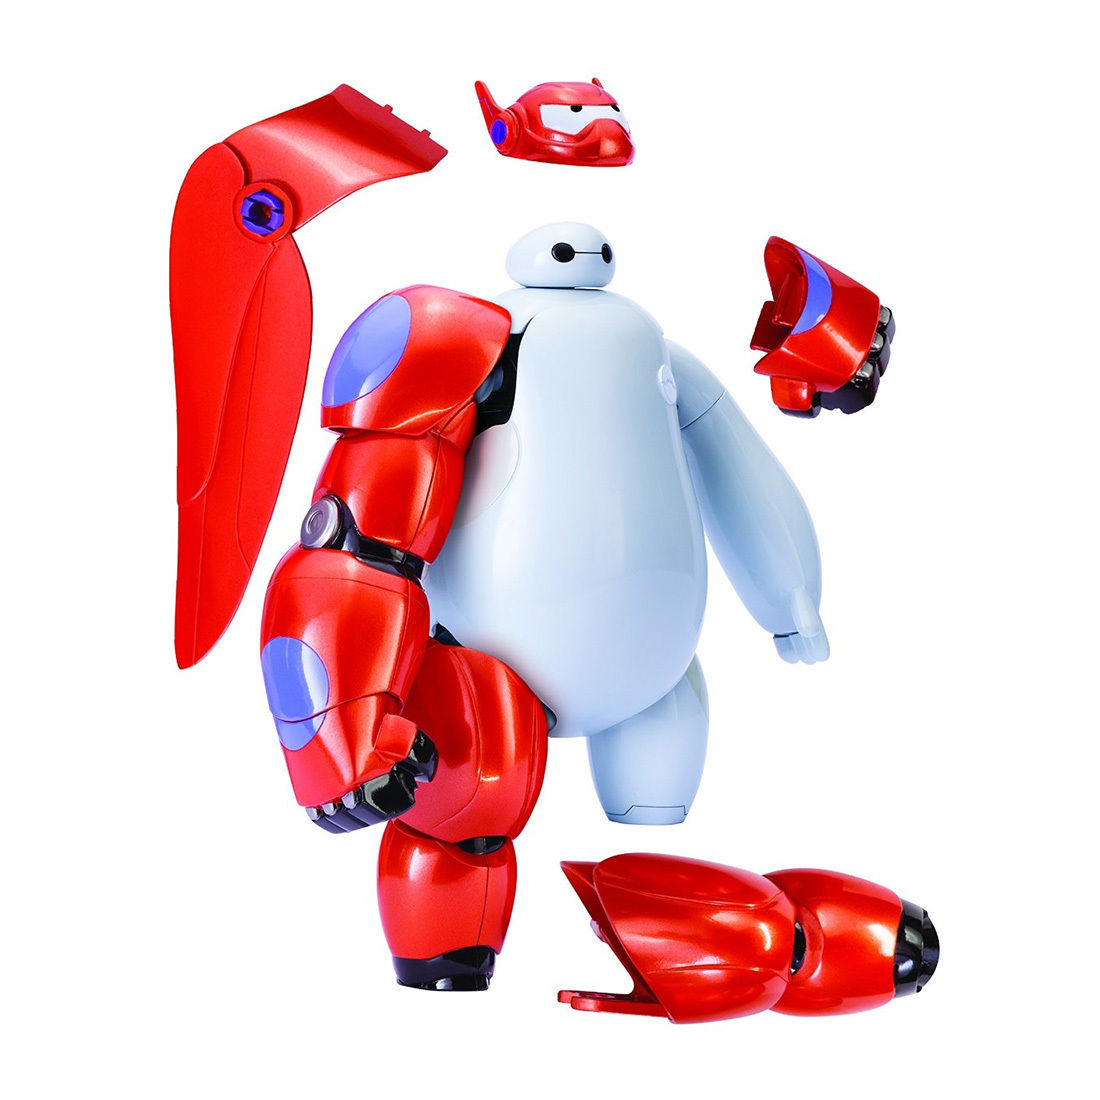 New Cute Creative Big Hero 6 Armor Up Baymax Deformable Robot Action Figure 20 parts Toy Fashion Gift(China (Mainland))